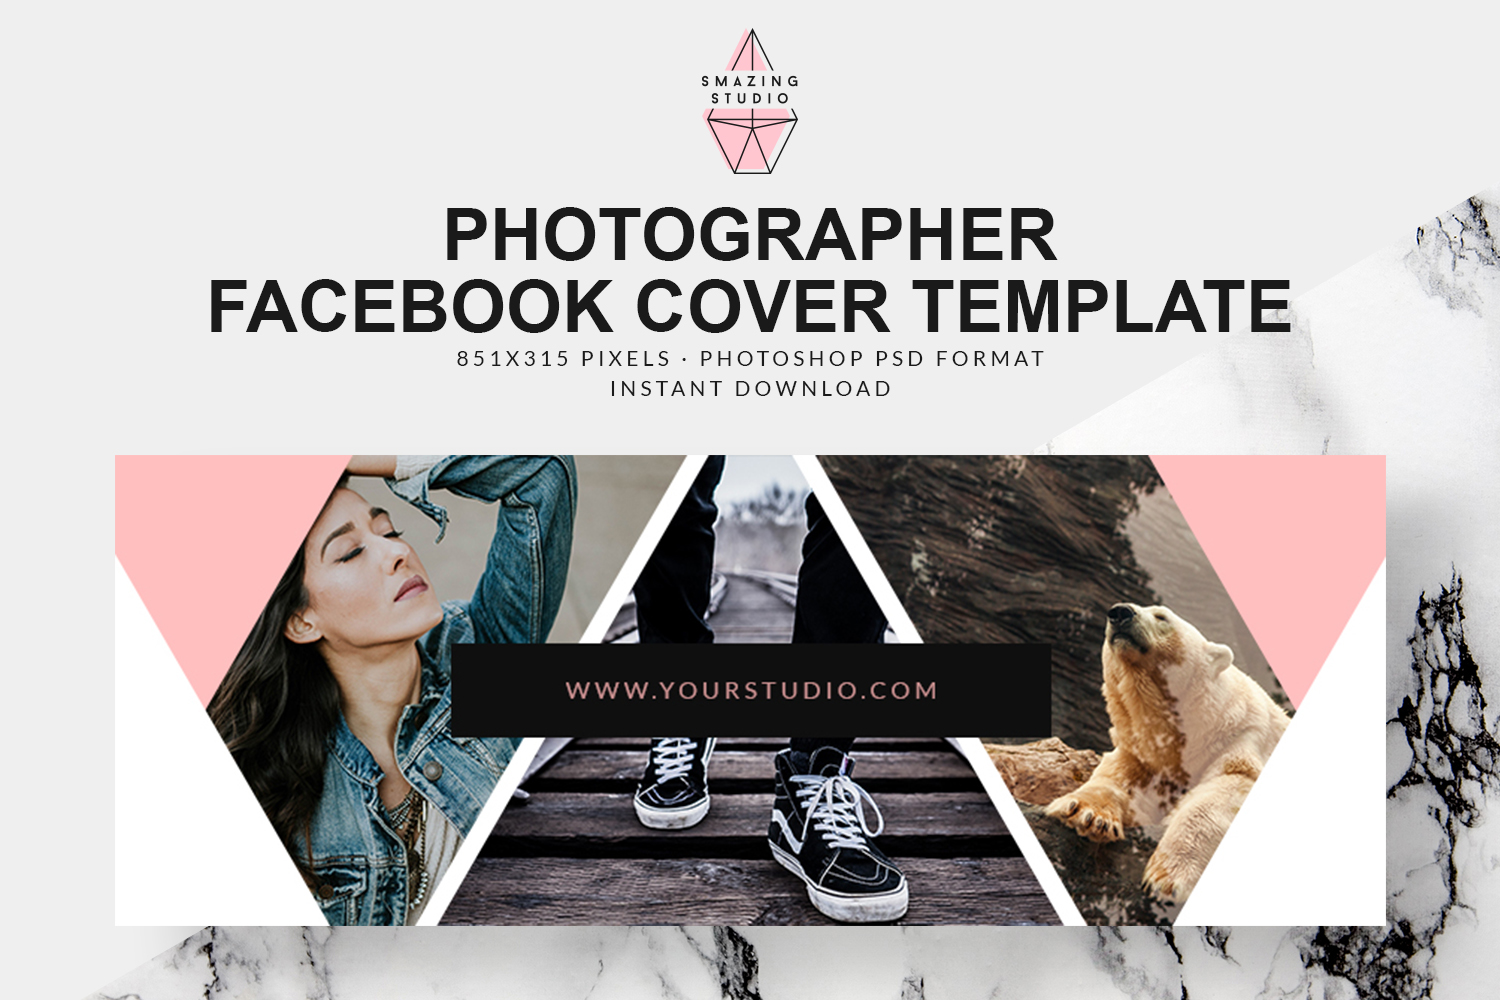 Photographer Facebook Cover Template - FBC004 example image 1